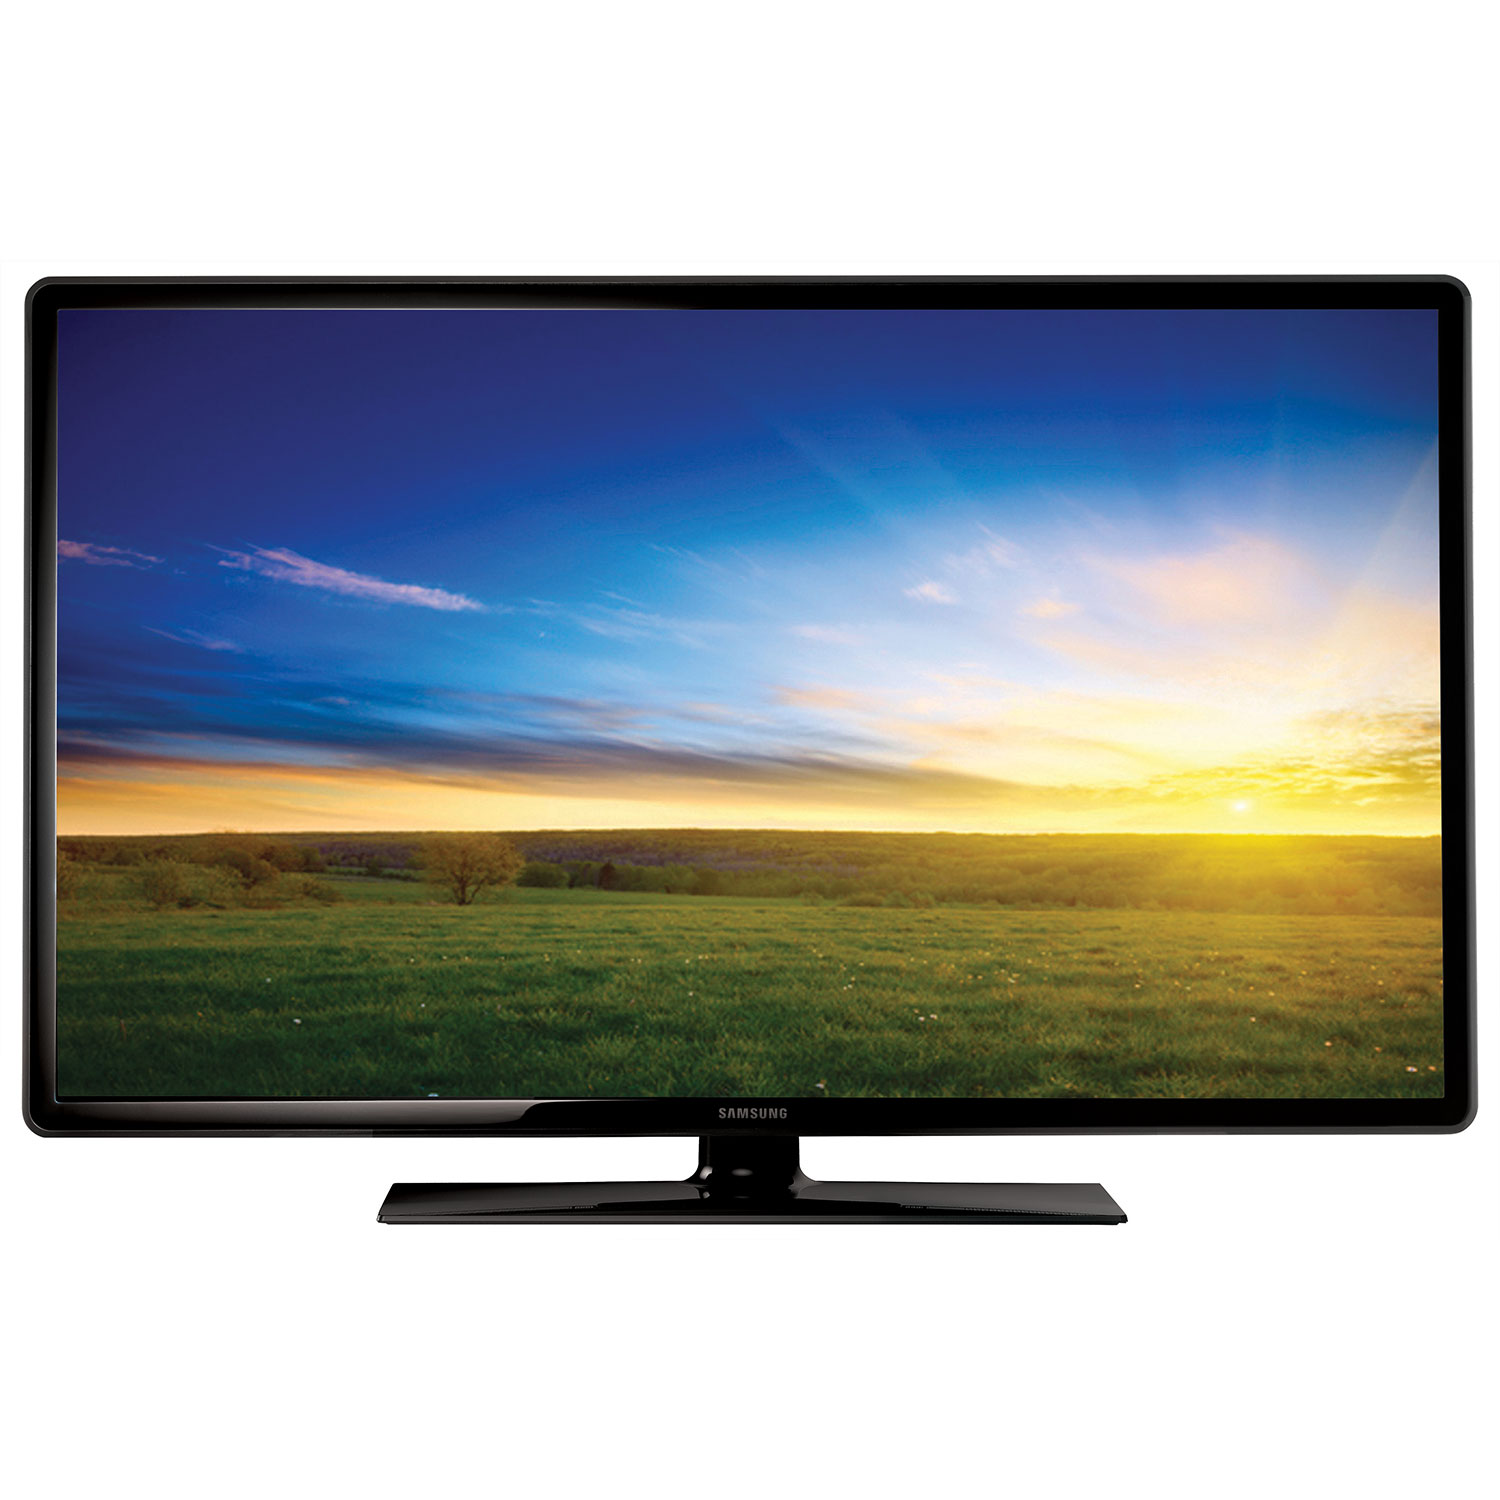 Small Televisions For Bedrooms Samsung 19 720p Led Tv Un19f4000afxzc 29 Inch And Under Tvs